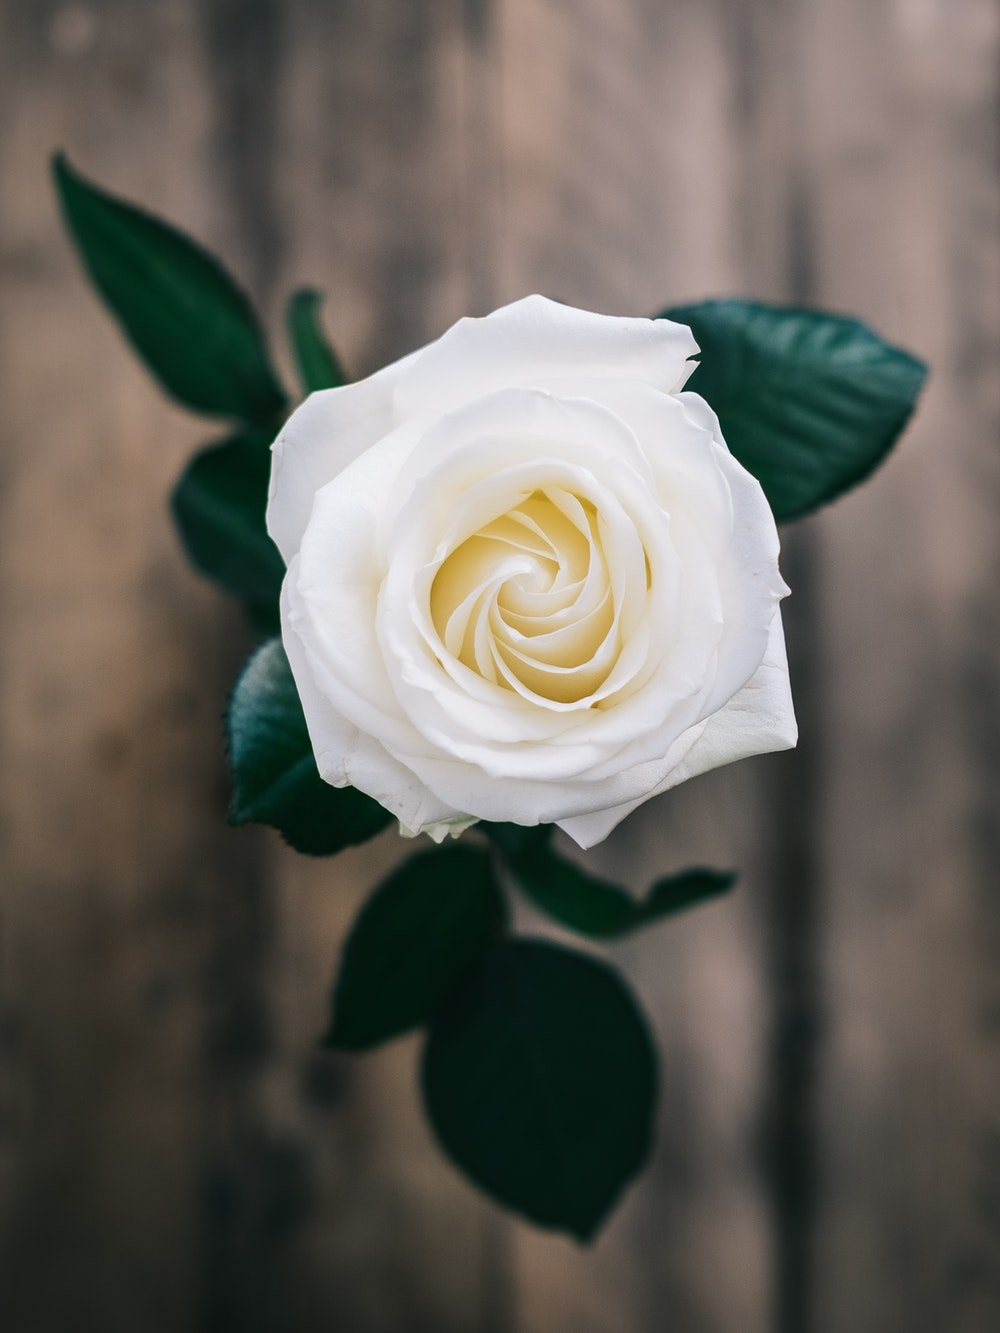 An image of a white rose